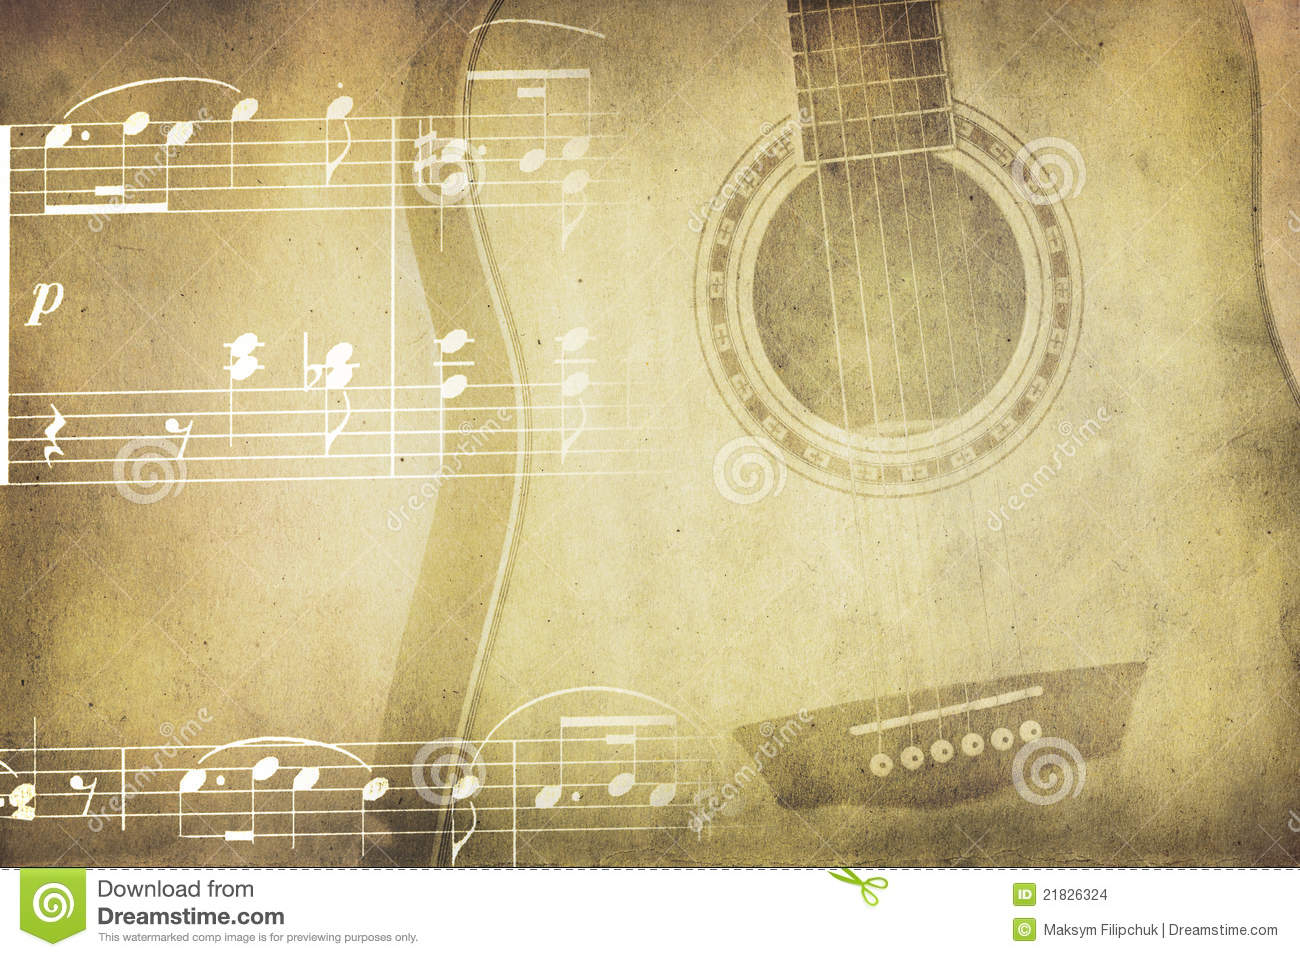 Vintage Music Note Wallpapers For Android Harmony: Vintage Music Collage Stock Photo. Image Of Guitar